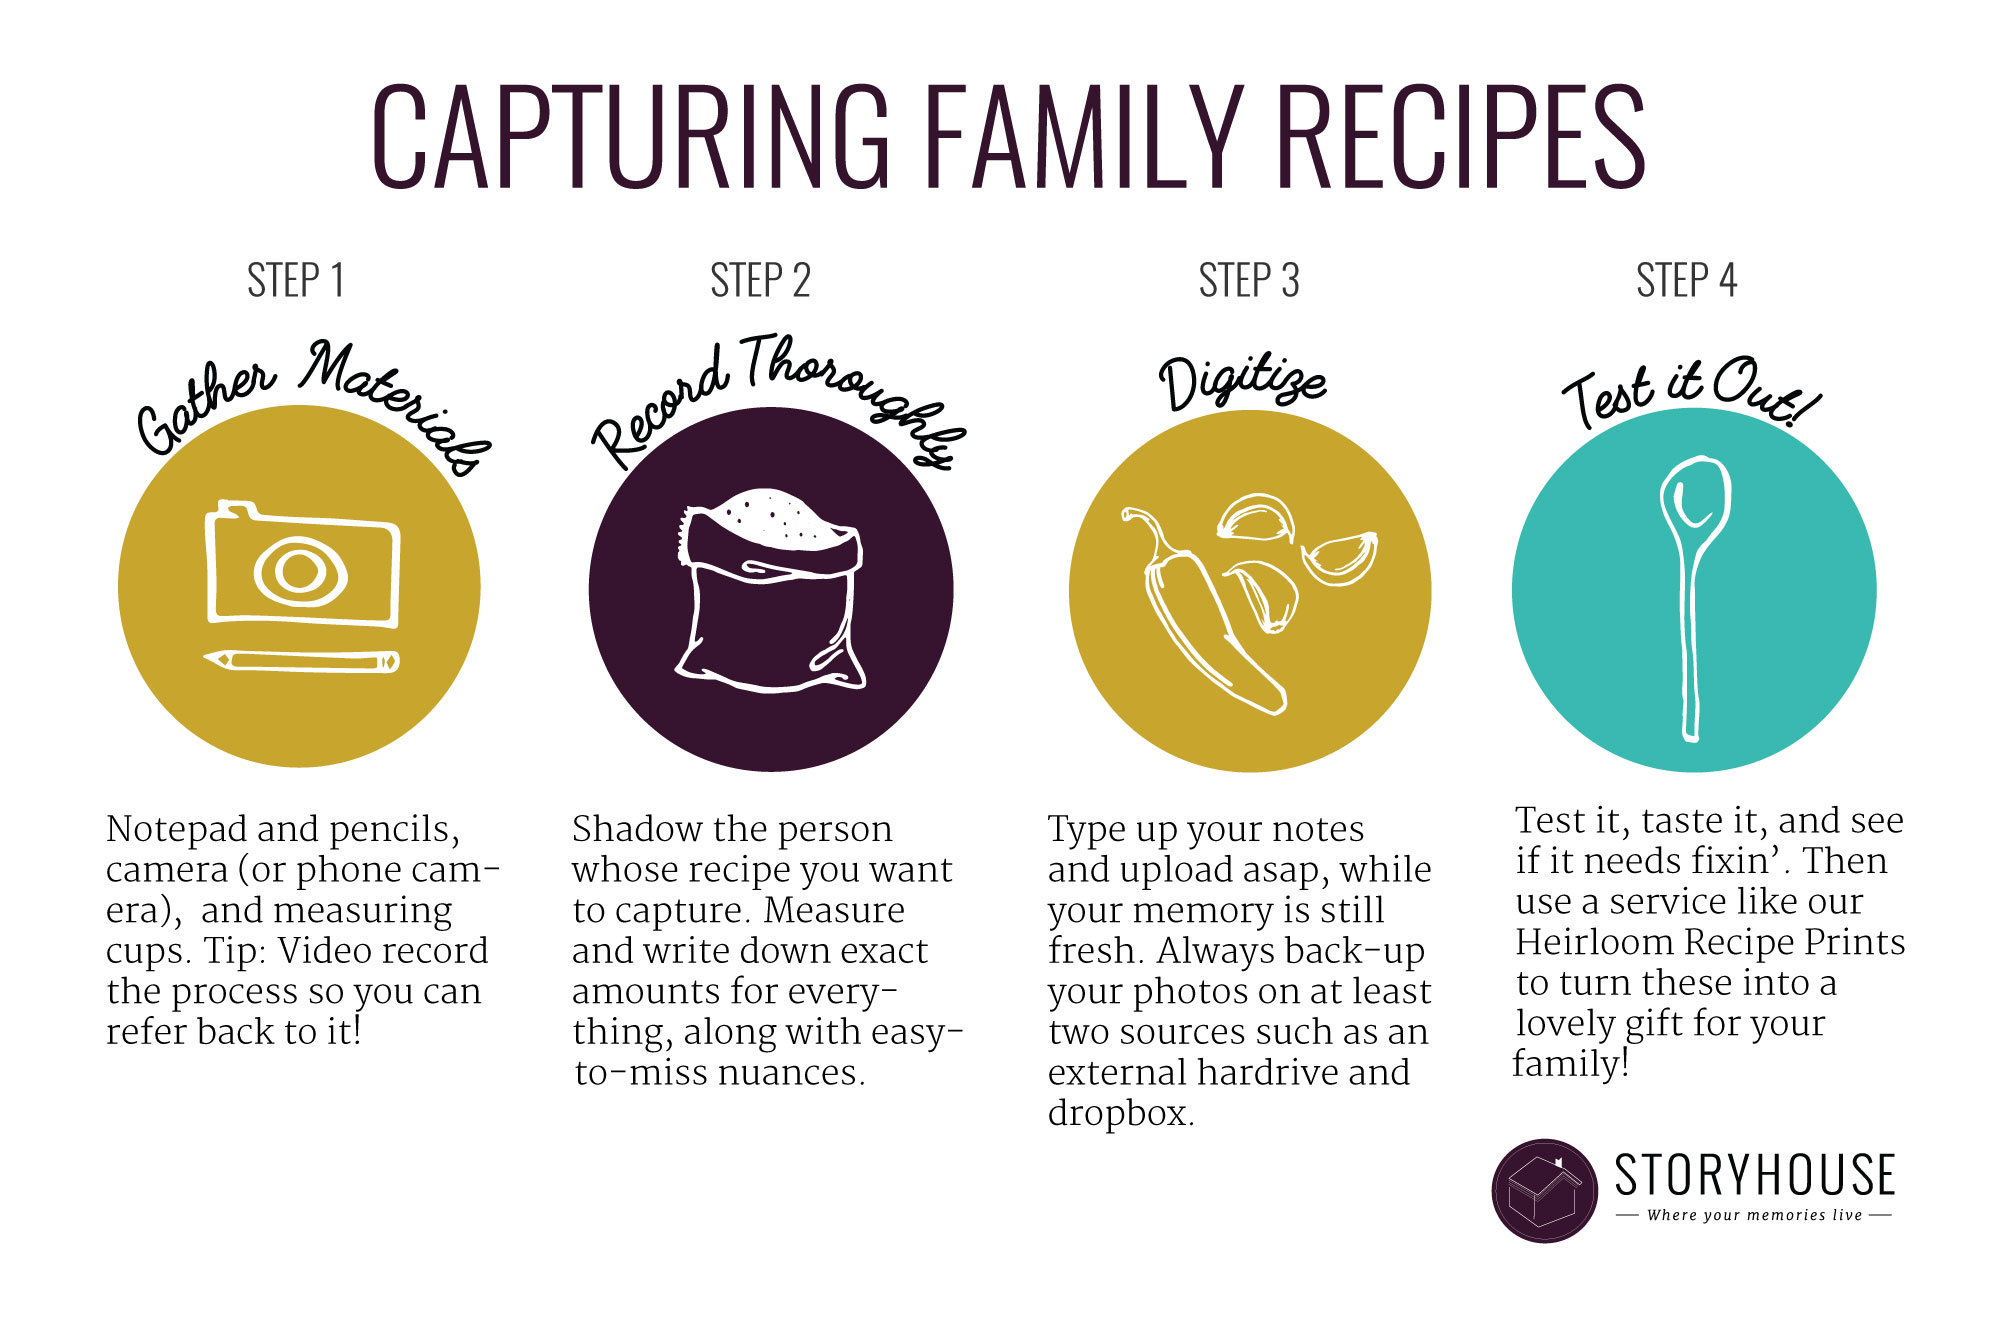 capturing-recipes-infographic.jpg